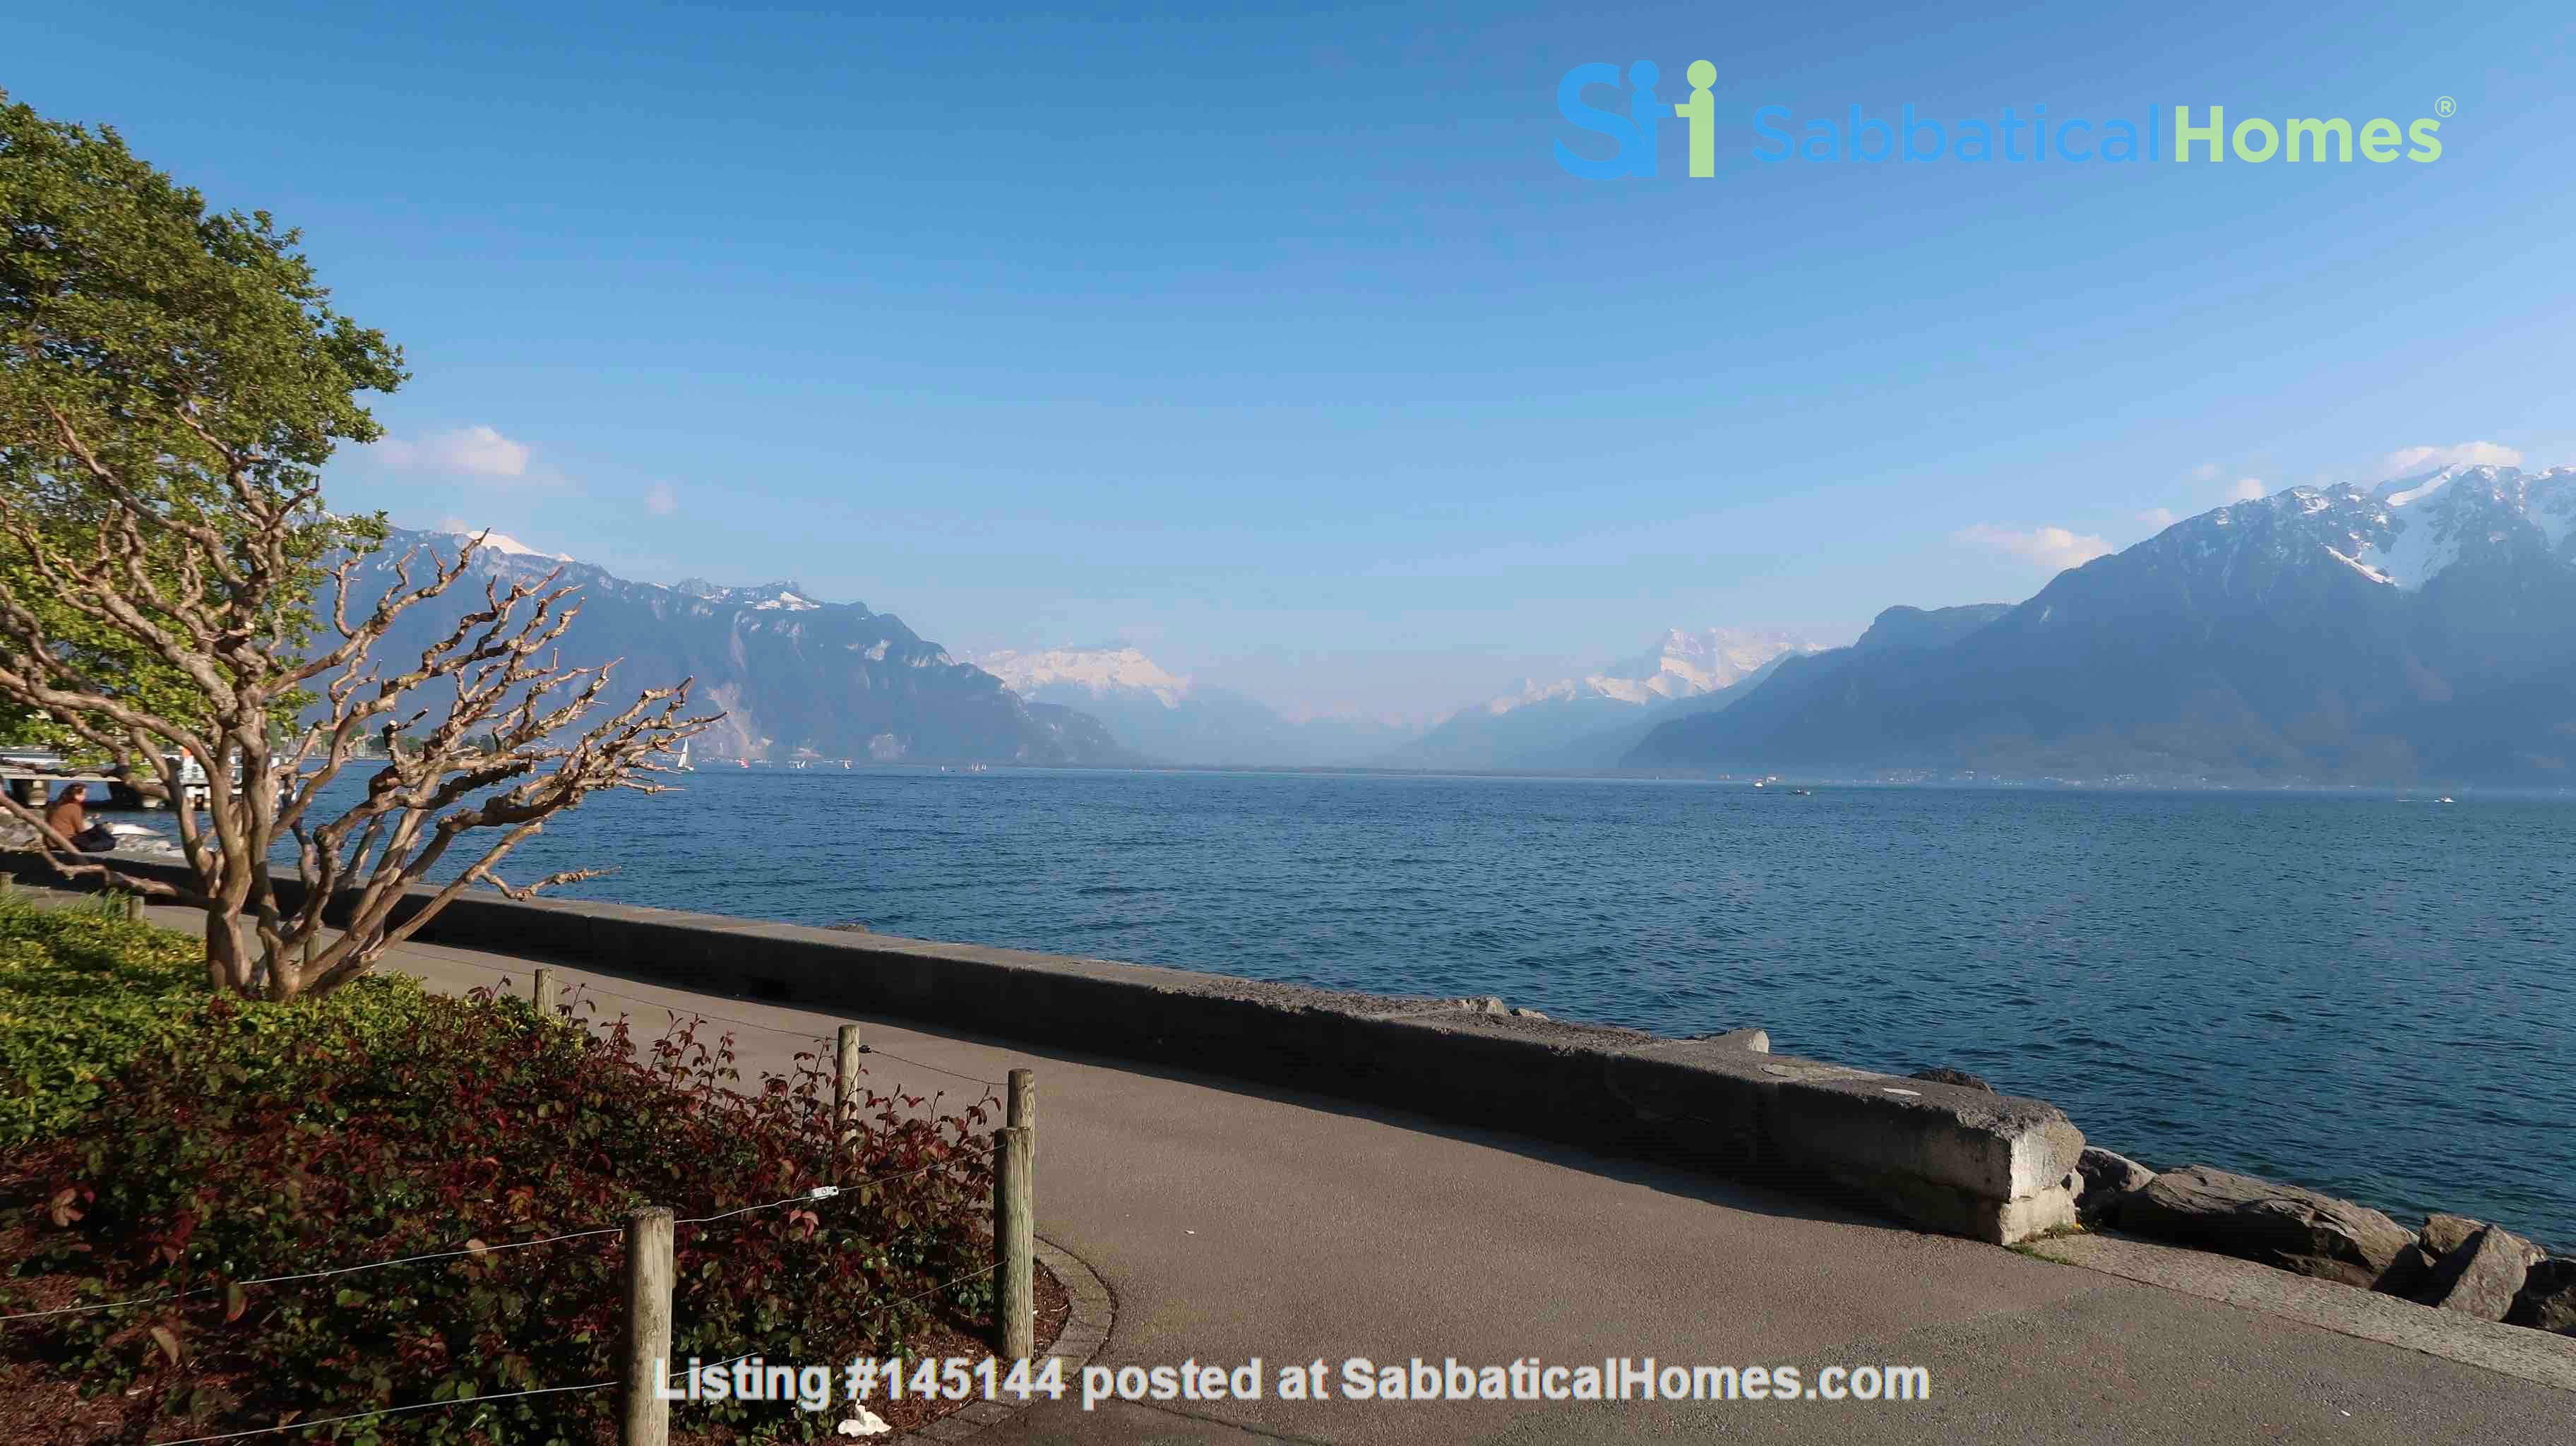 Looking for a beautiful place to live, close to lake, vineyard and mountain Home Rental in Vevey, Vaud, Switzerland 0